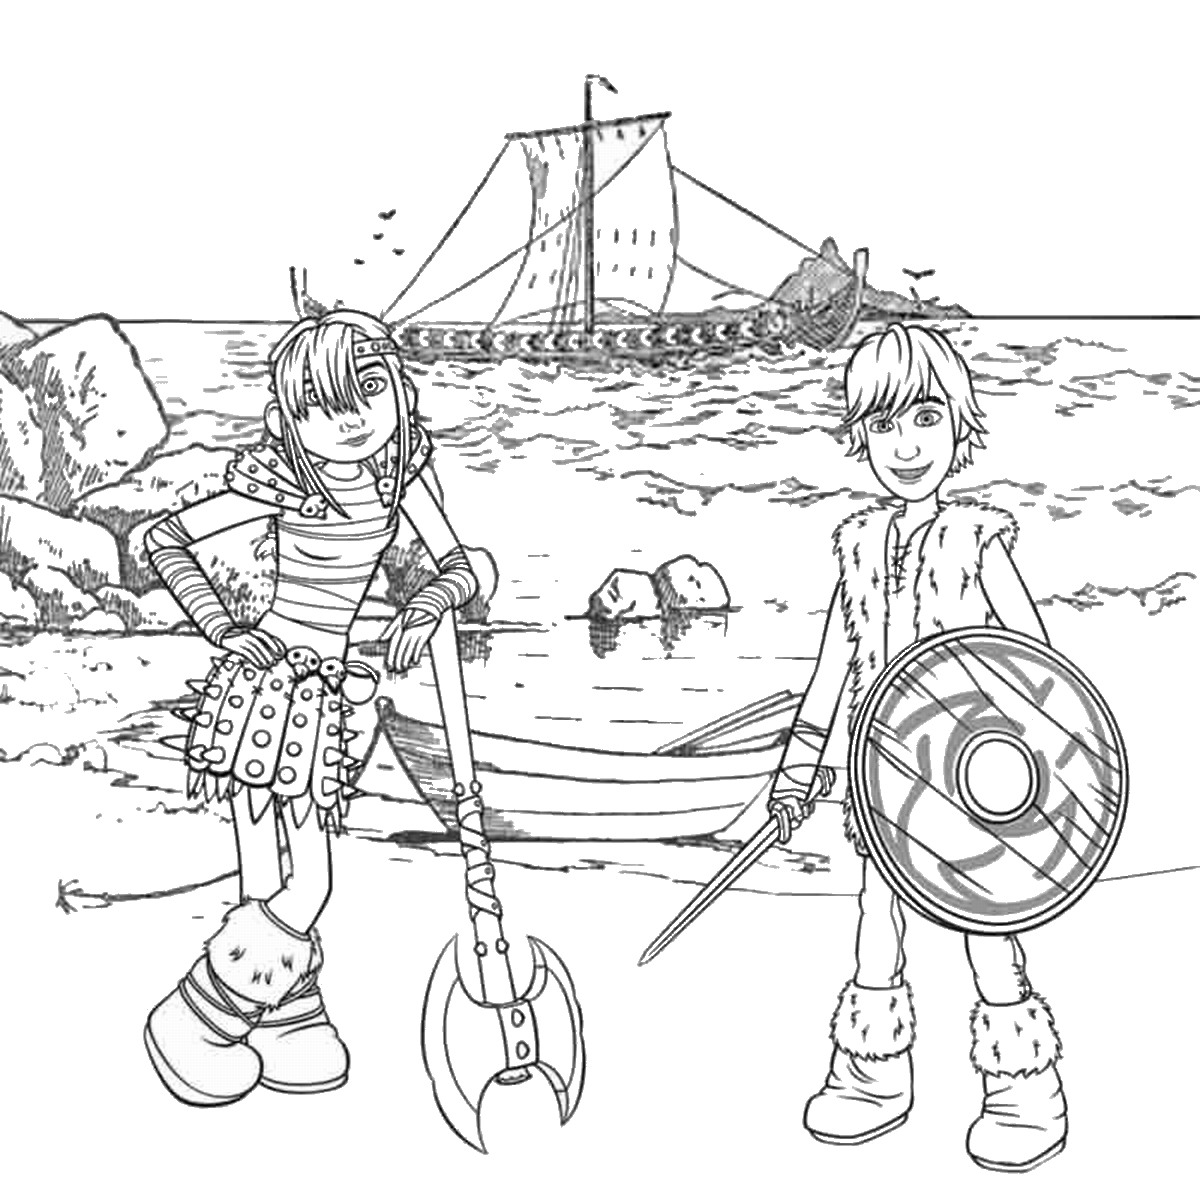 Free printable coloring pages how to train your dragon - How To Train Your Dragon Printable Coloring Pages